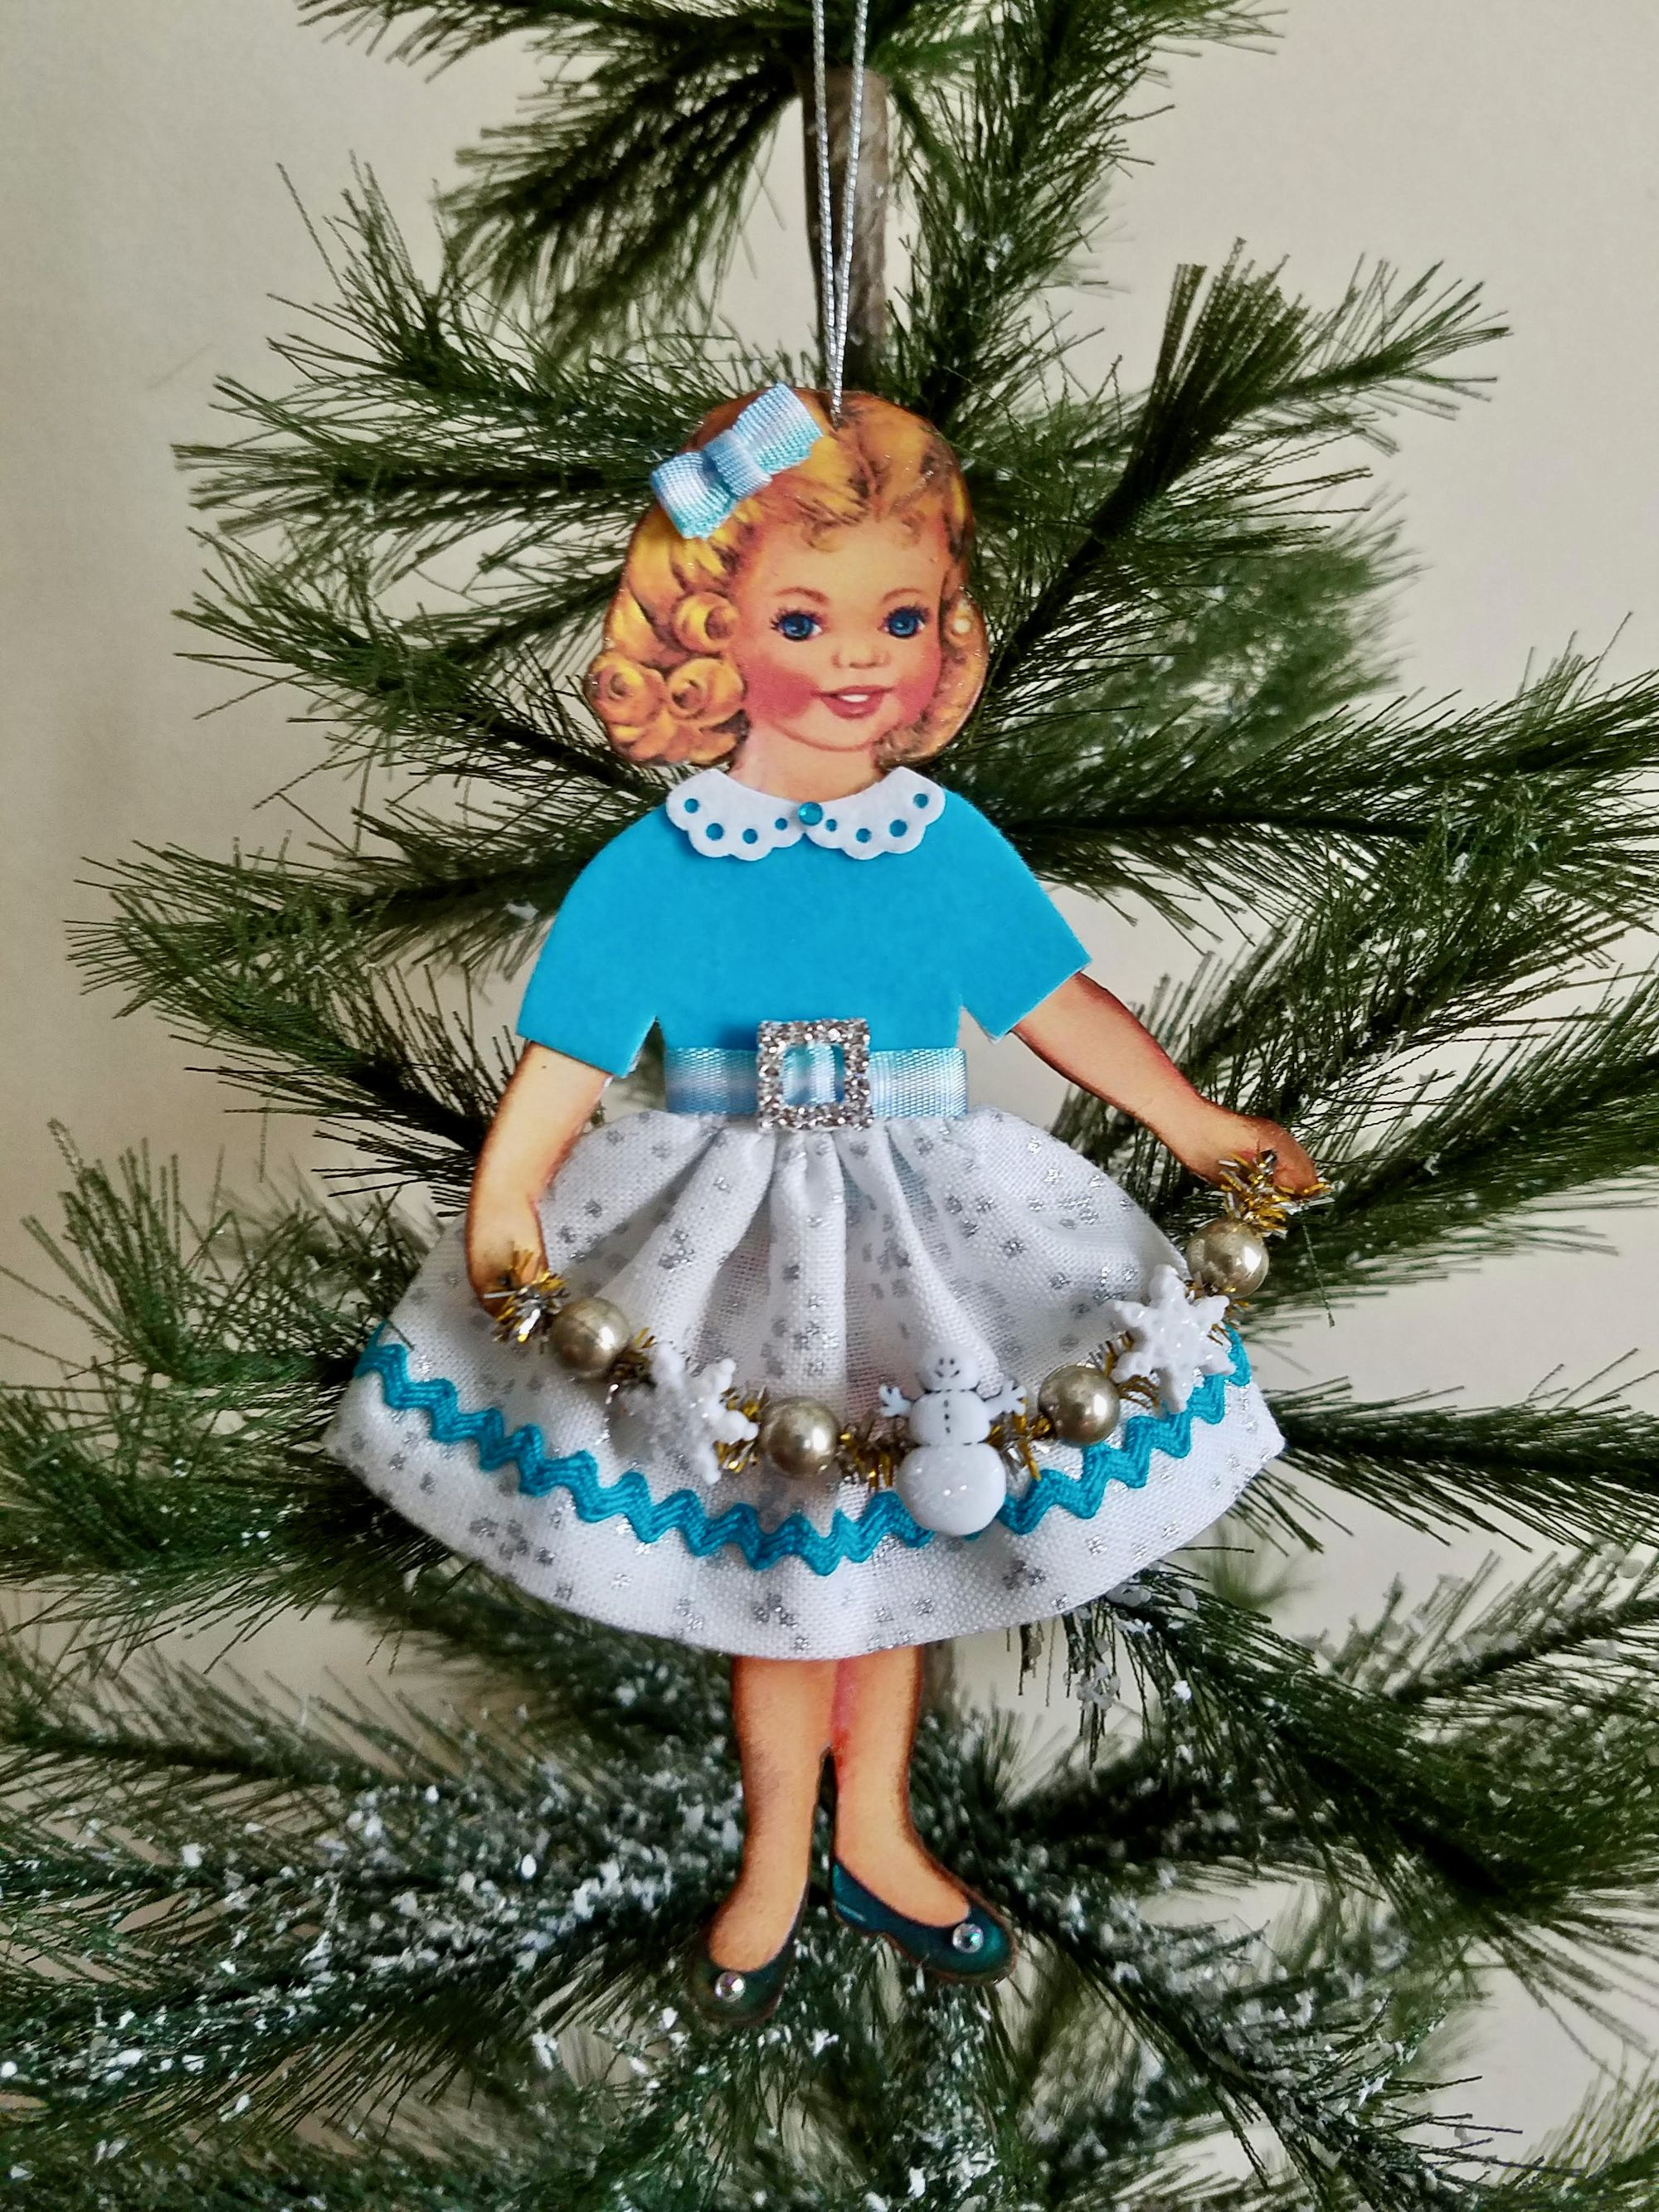 Handmade retro 50s paper doll ornament holding a tinsel